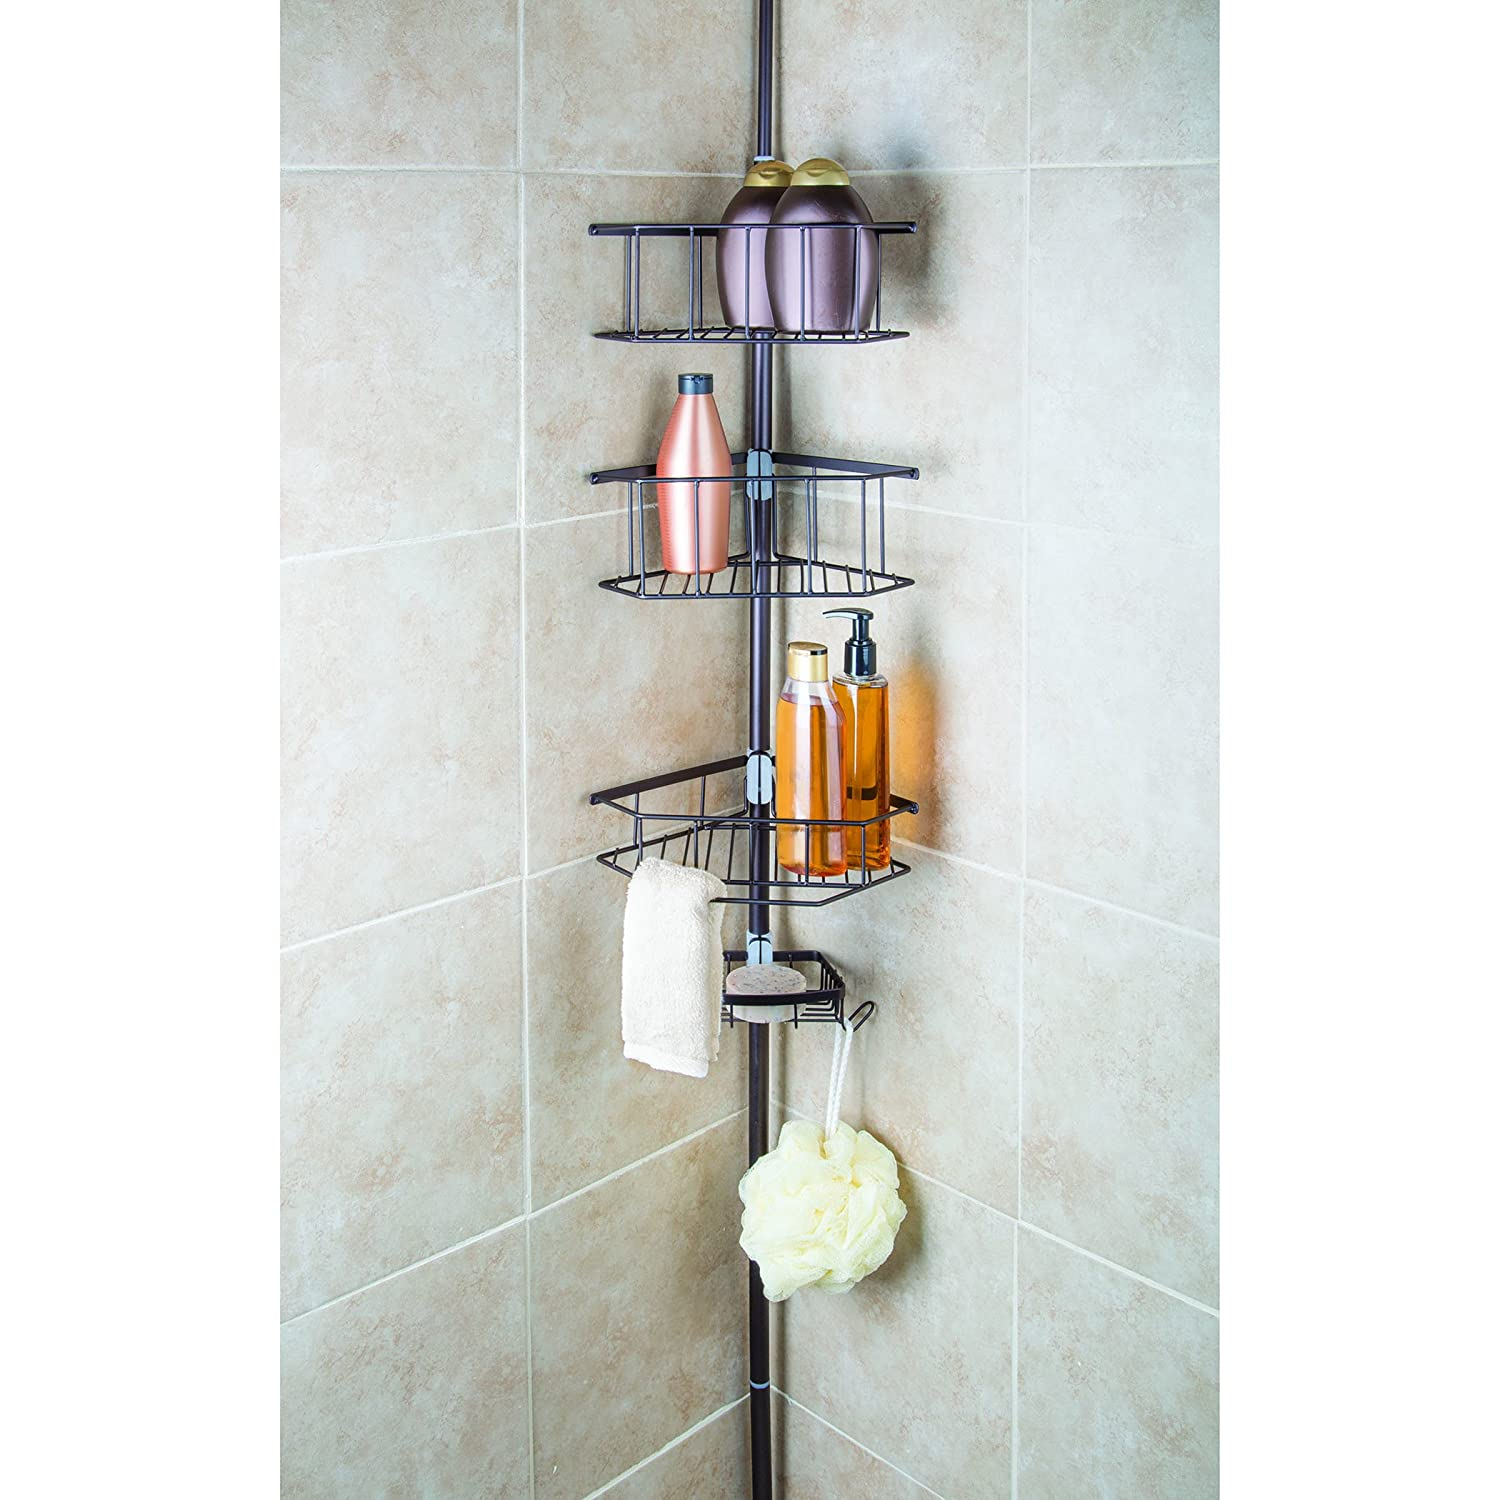 amazoncom homecrate three tier corner tension pole shower caddy 9ft height with soap dish home u0026 kitchen